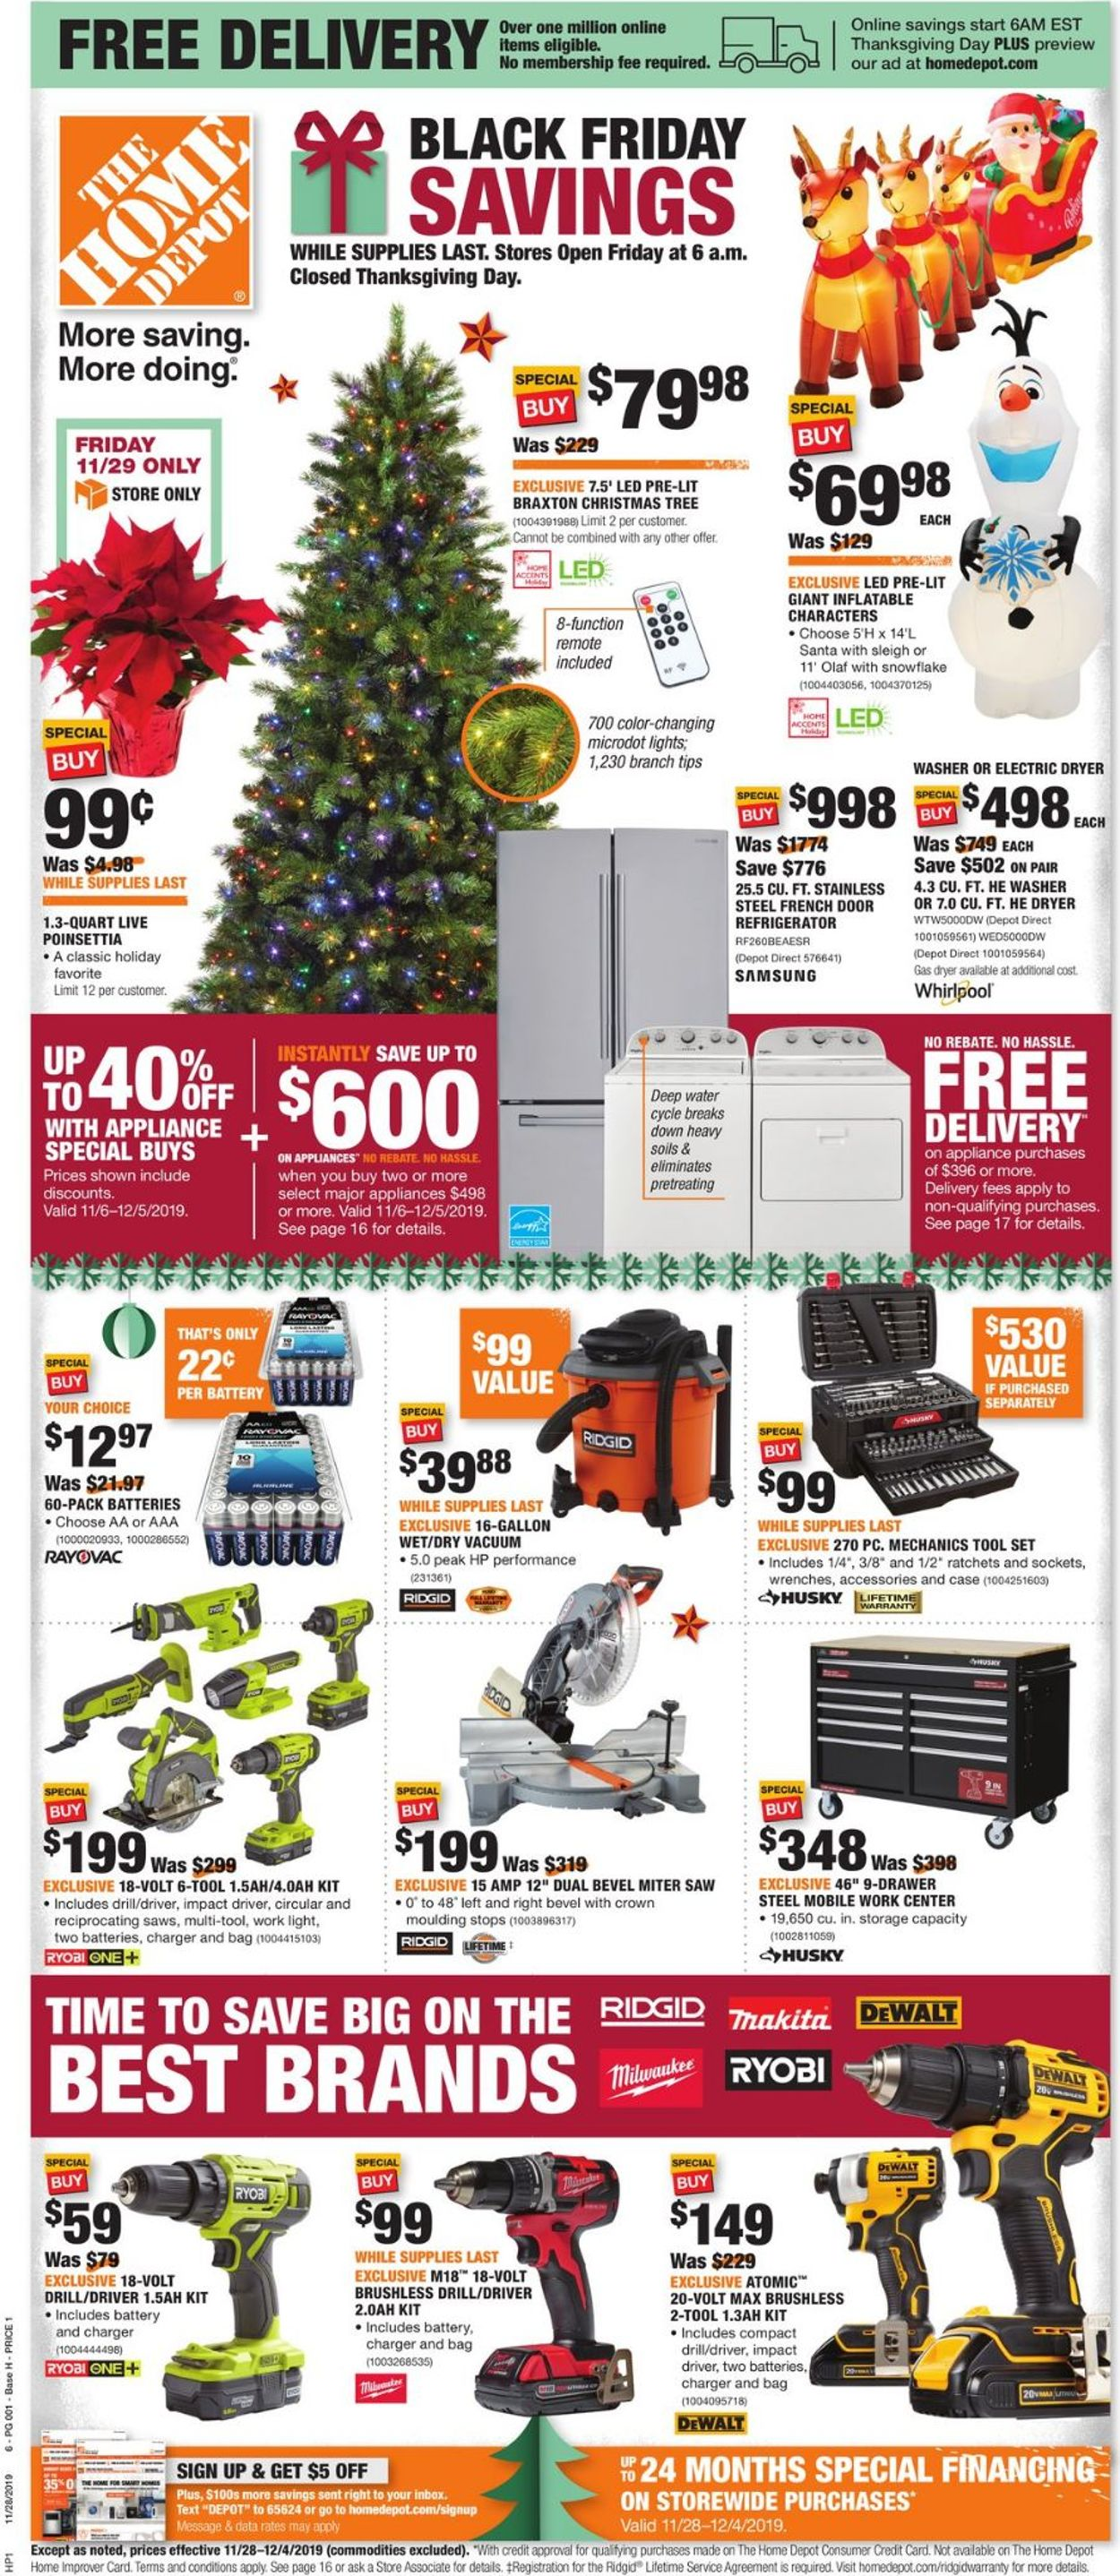 Home Depot Black Friday Savings 2019 Current Weekly Ad 11 28 12 04 2019 Frequent Ads Com